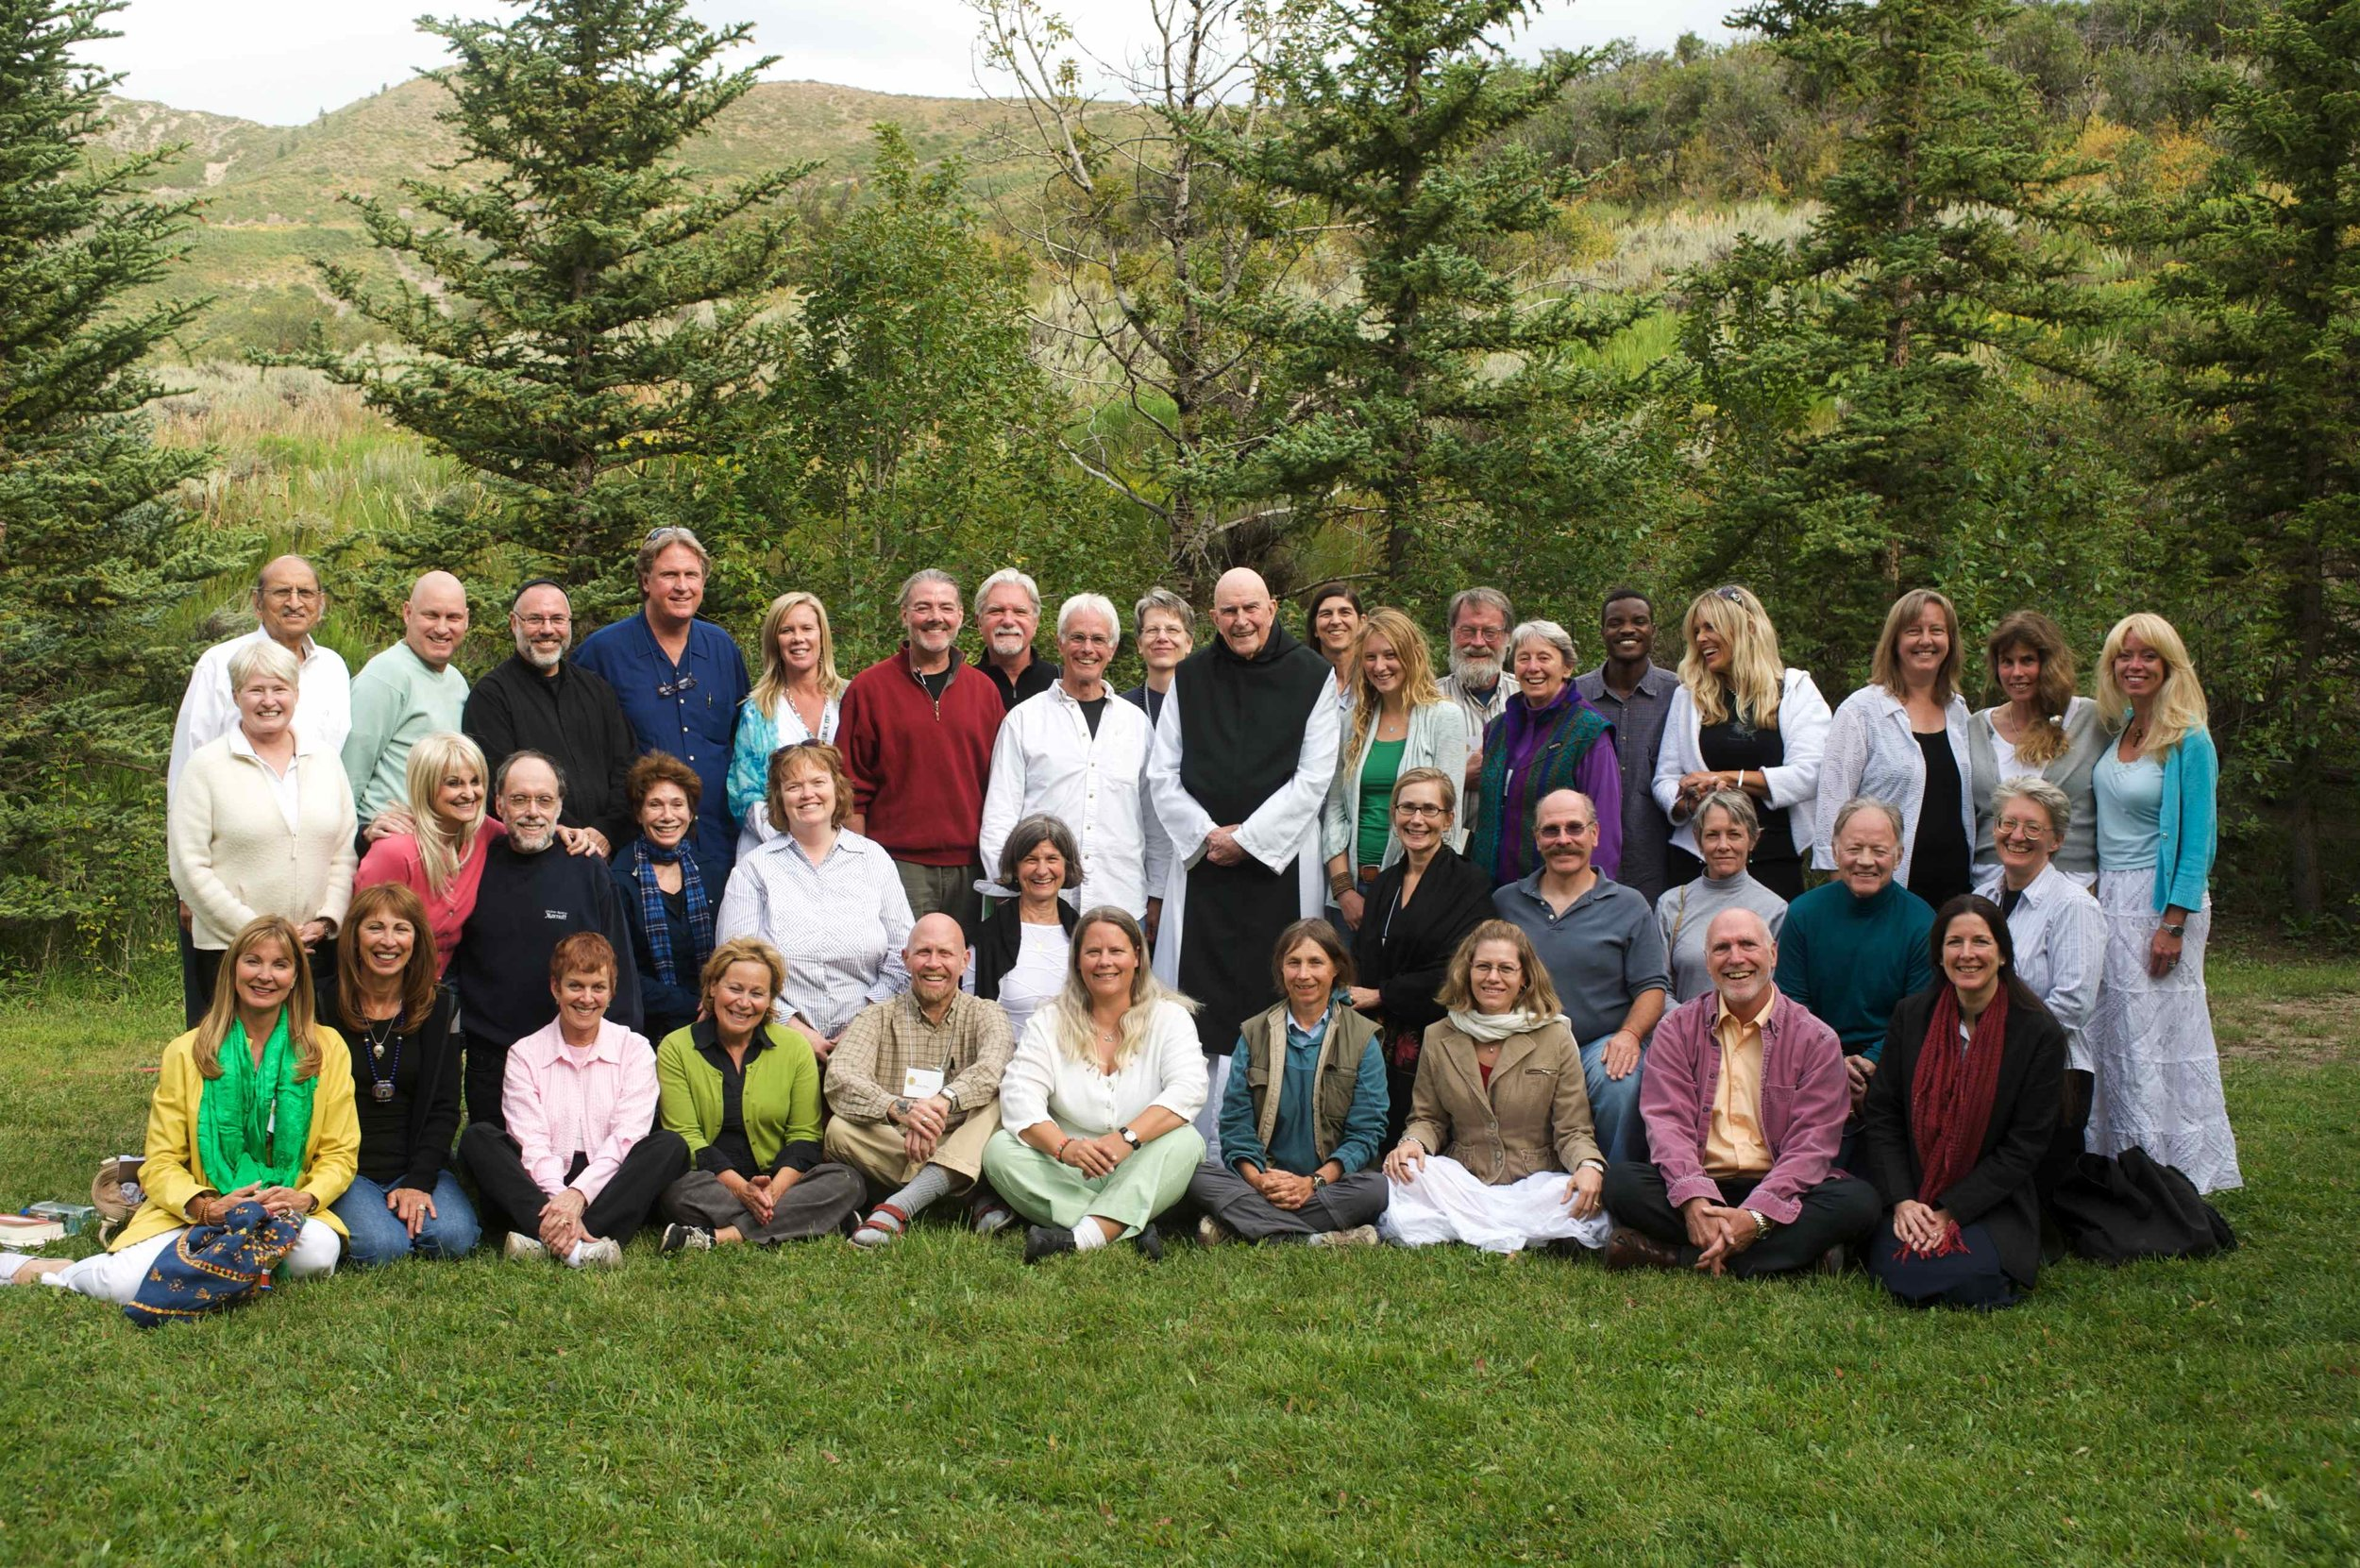 A Spiritual Paths Institute interspirituality event at St. Benedicts Monastery. – Photo: interspiritualwisdom.org